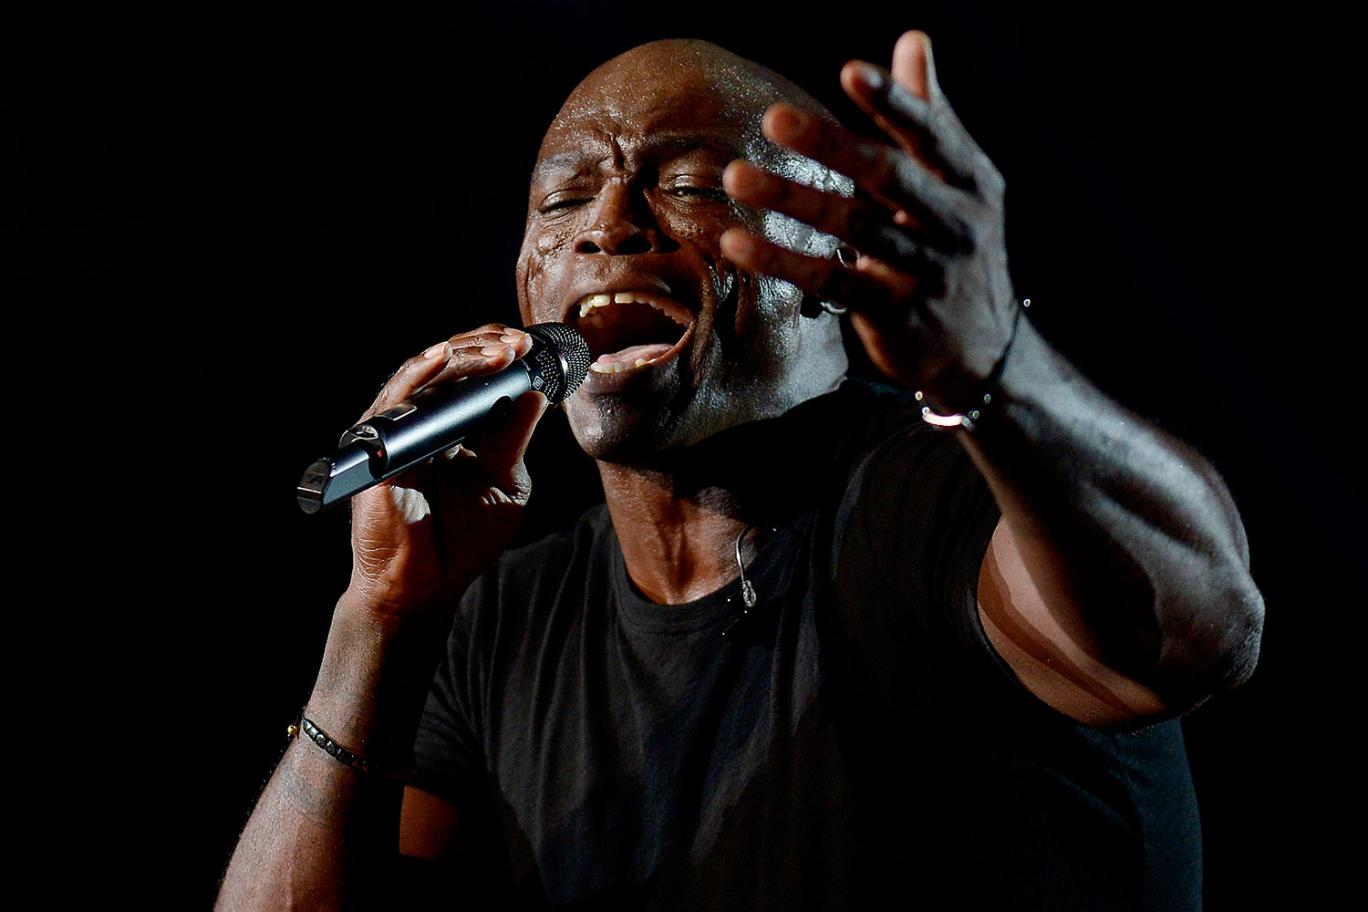 seal, seal 7, new music, Ultimate Spotlight, ultimate spotlight magazine, usl magazine, uslmagazine.com, usl mag, uslmag.com, uslmag, ultimate spotlight, atlanta music magazine, baltimore music magazine, d.c. music magazine